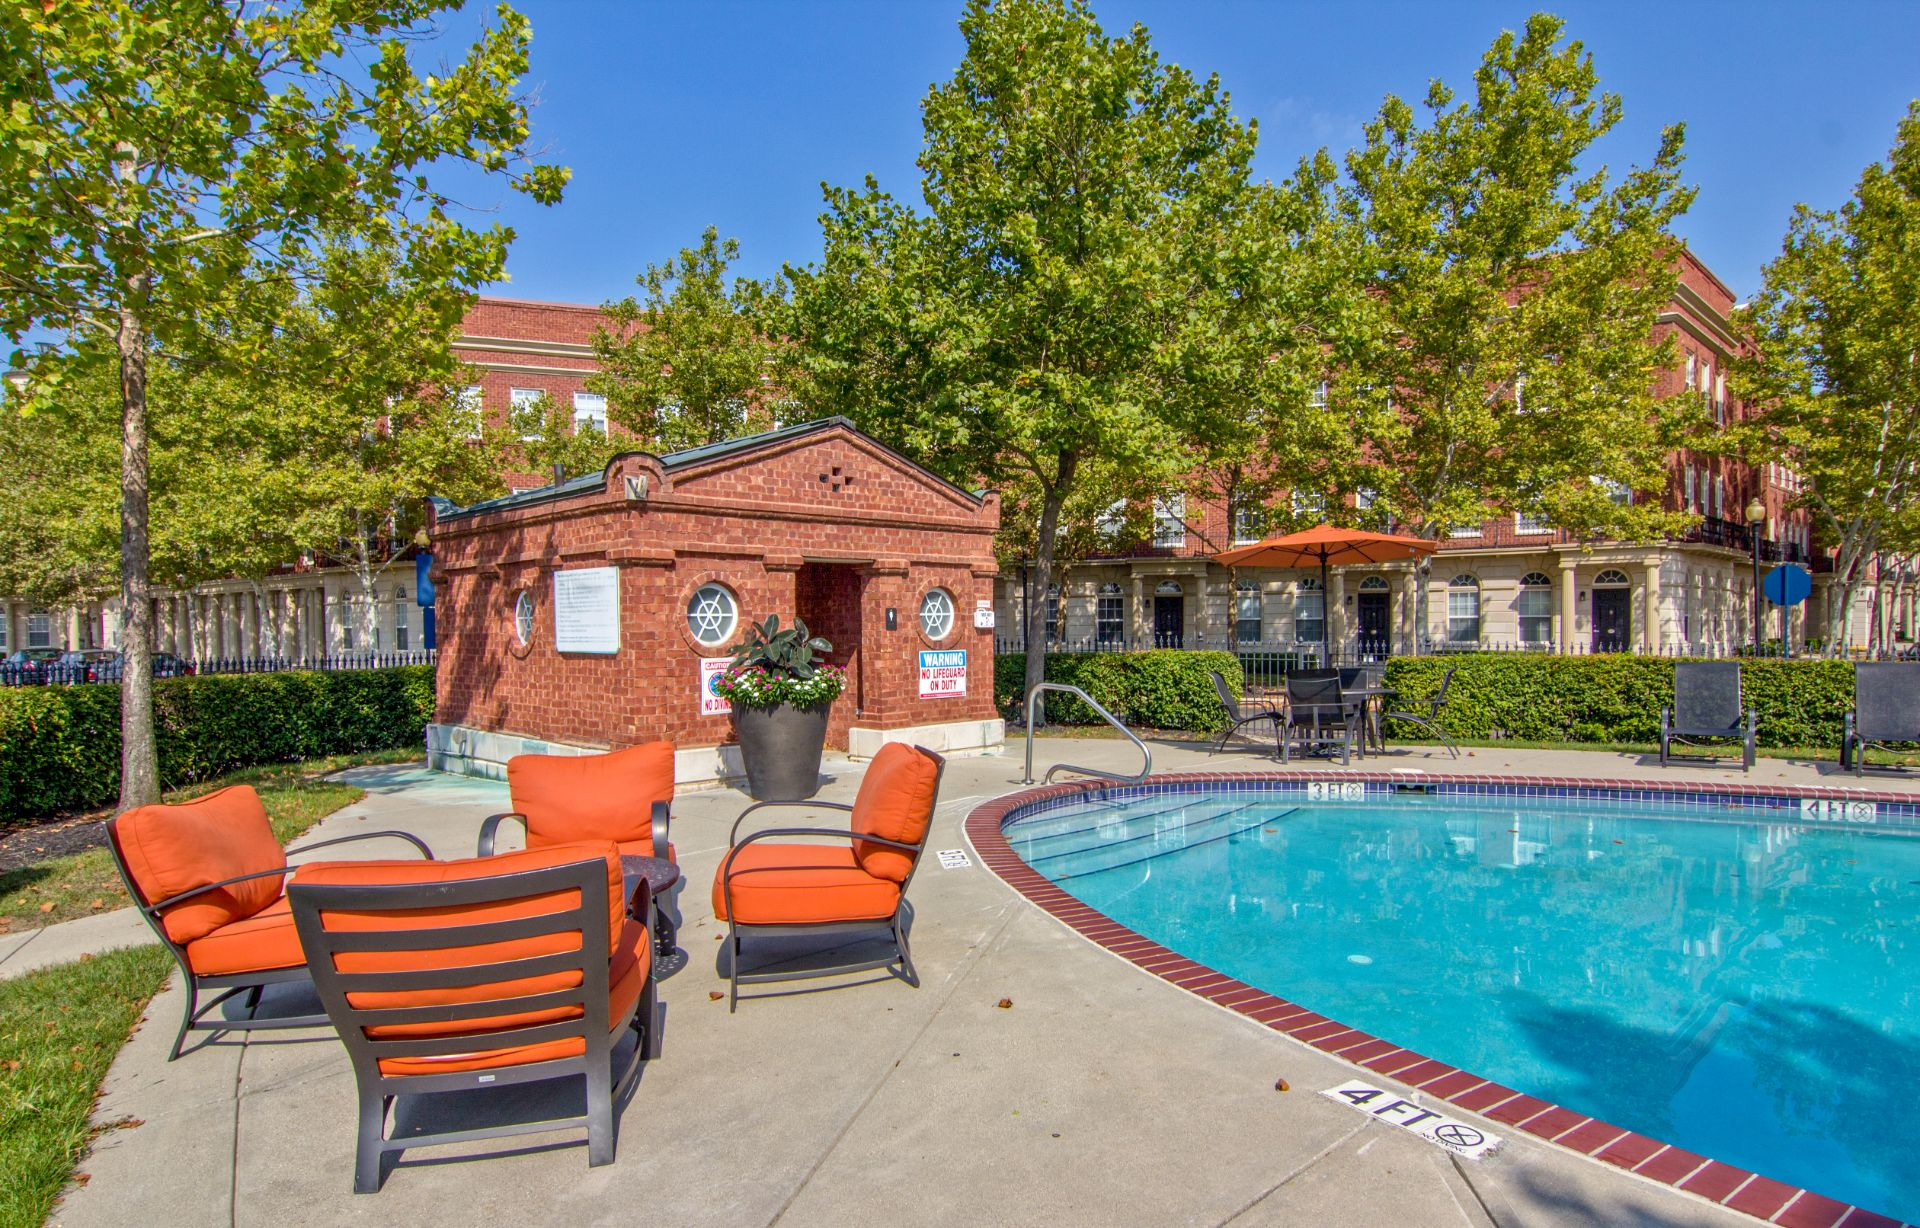 Easton Commons Apartments and Townhomes with Pool and Sundeck 4011 Easton Way Columbus OH 43219